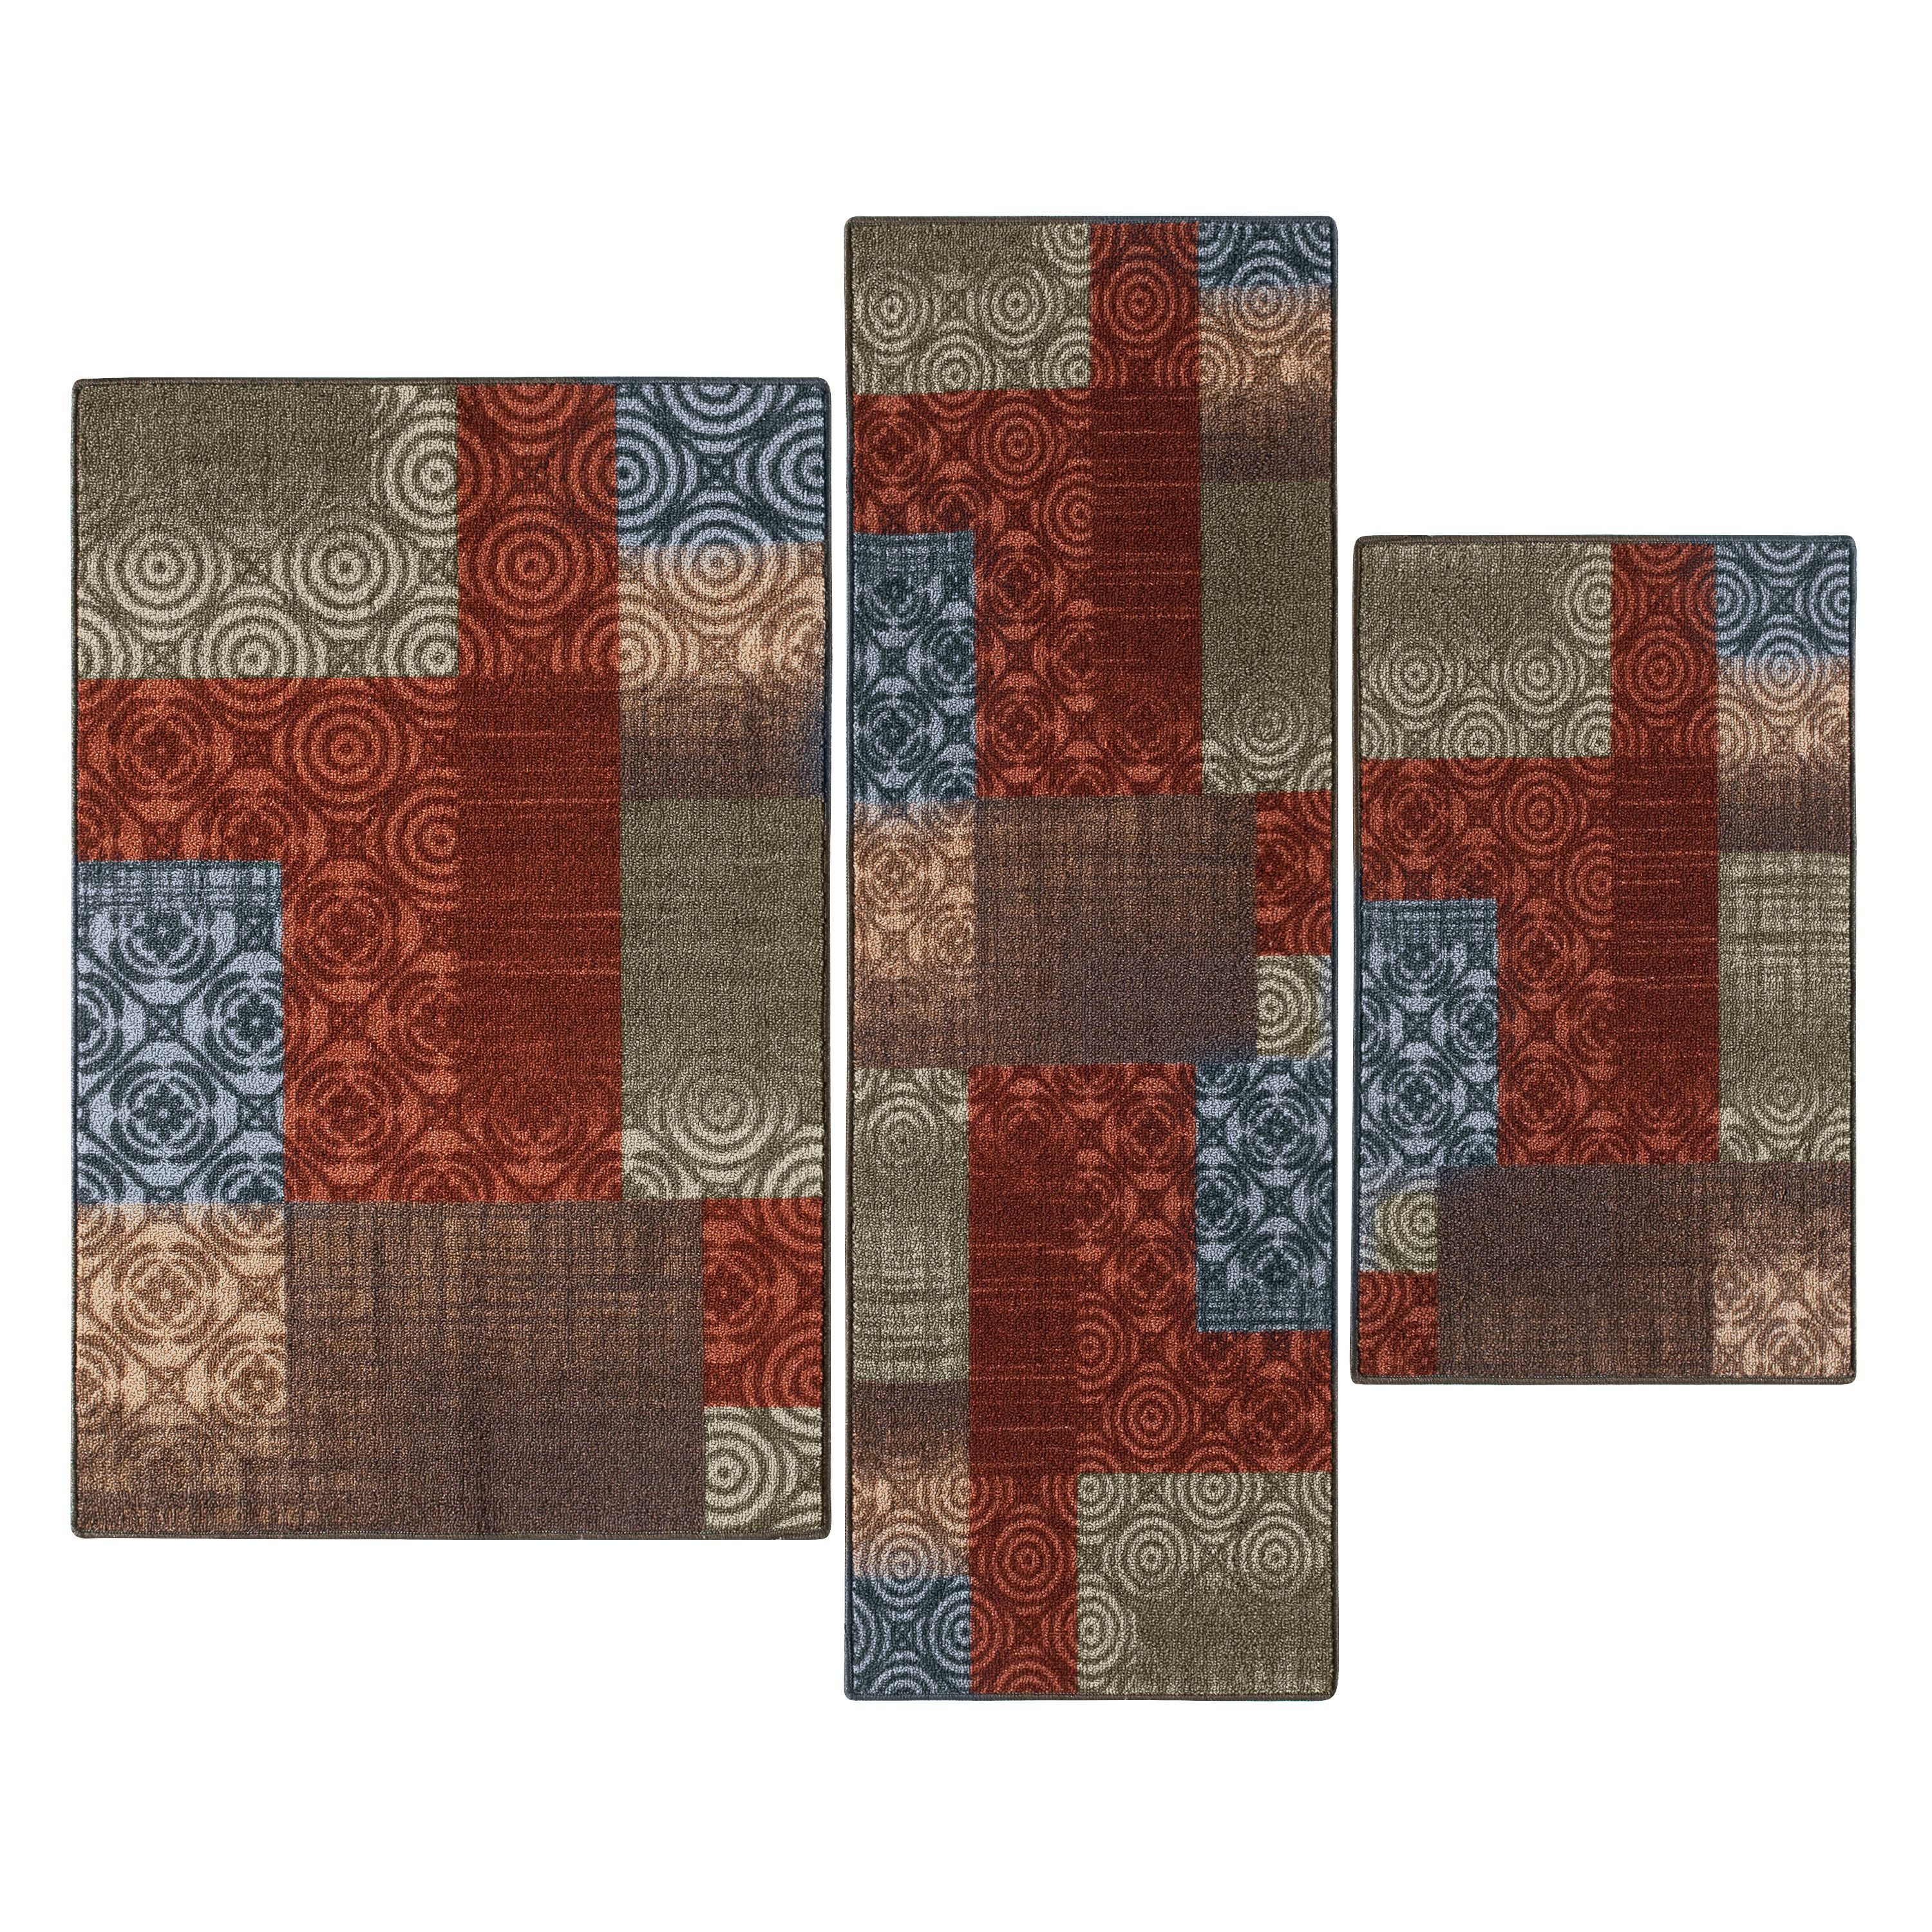 Mainstays Payton Loop Pile Multi Colored 3-Piece Accent Rug Set